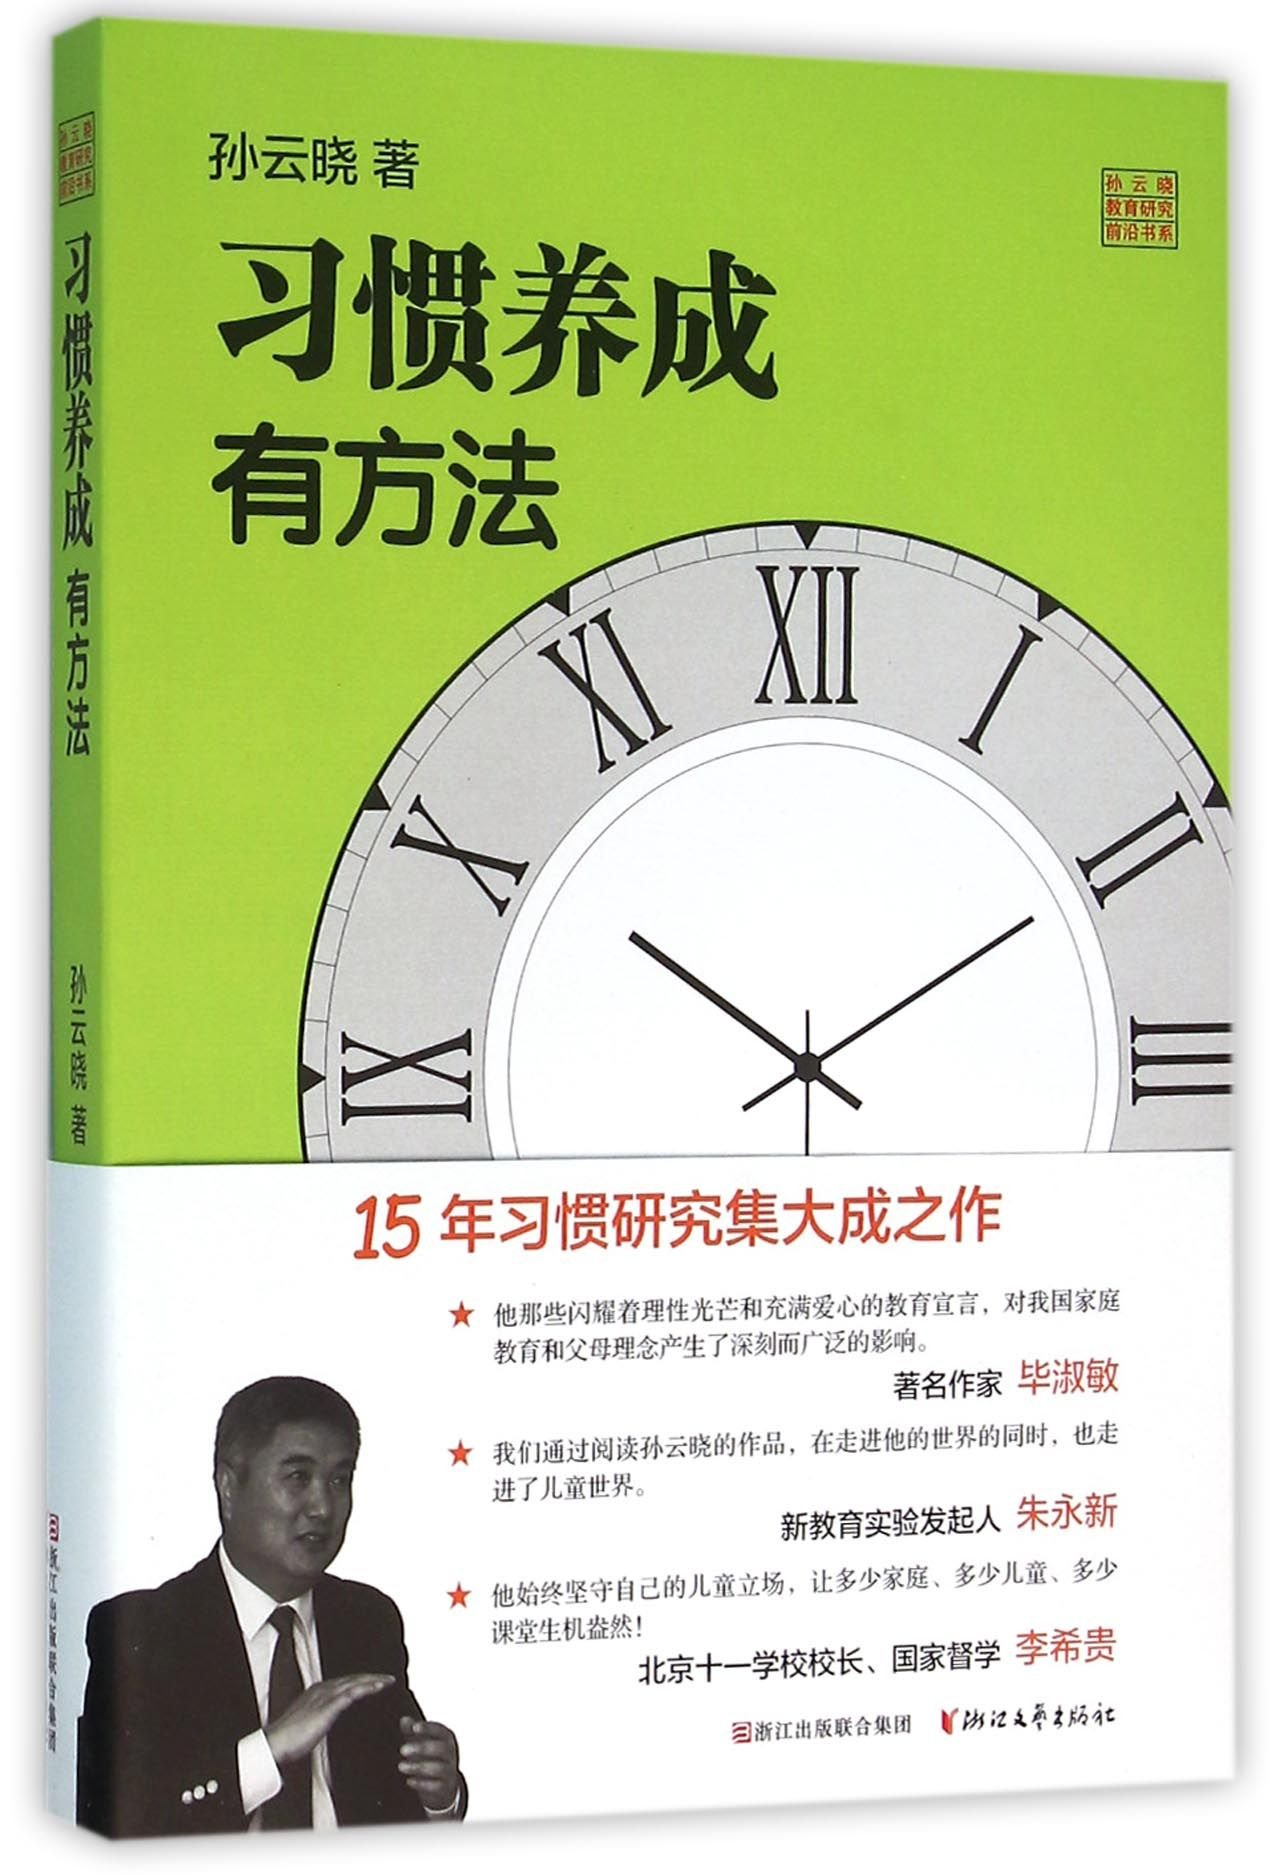 Download Habit Cultivation is Not an Issue (Chinese Edition) pdf